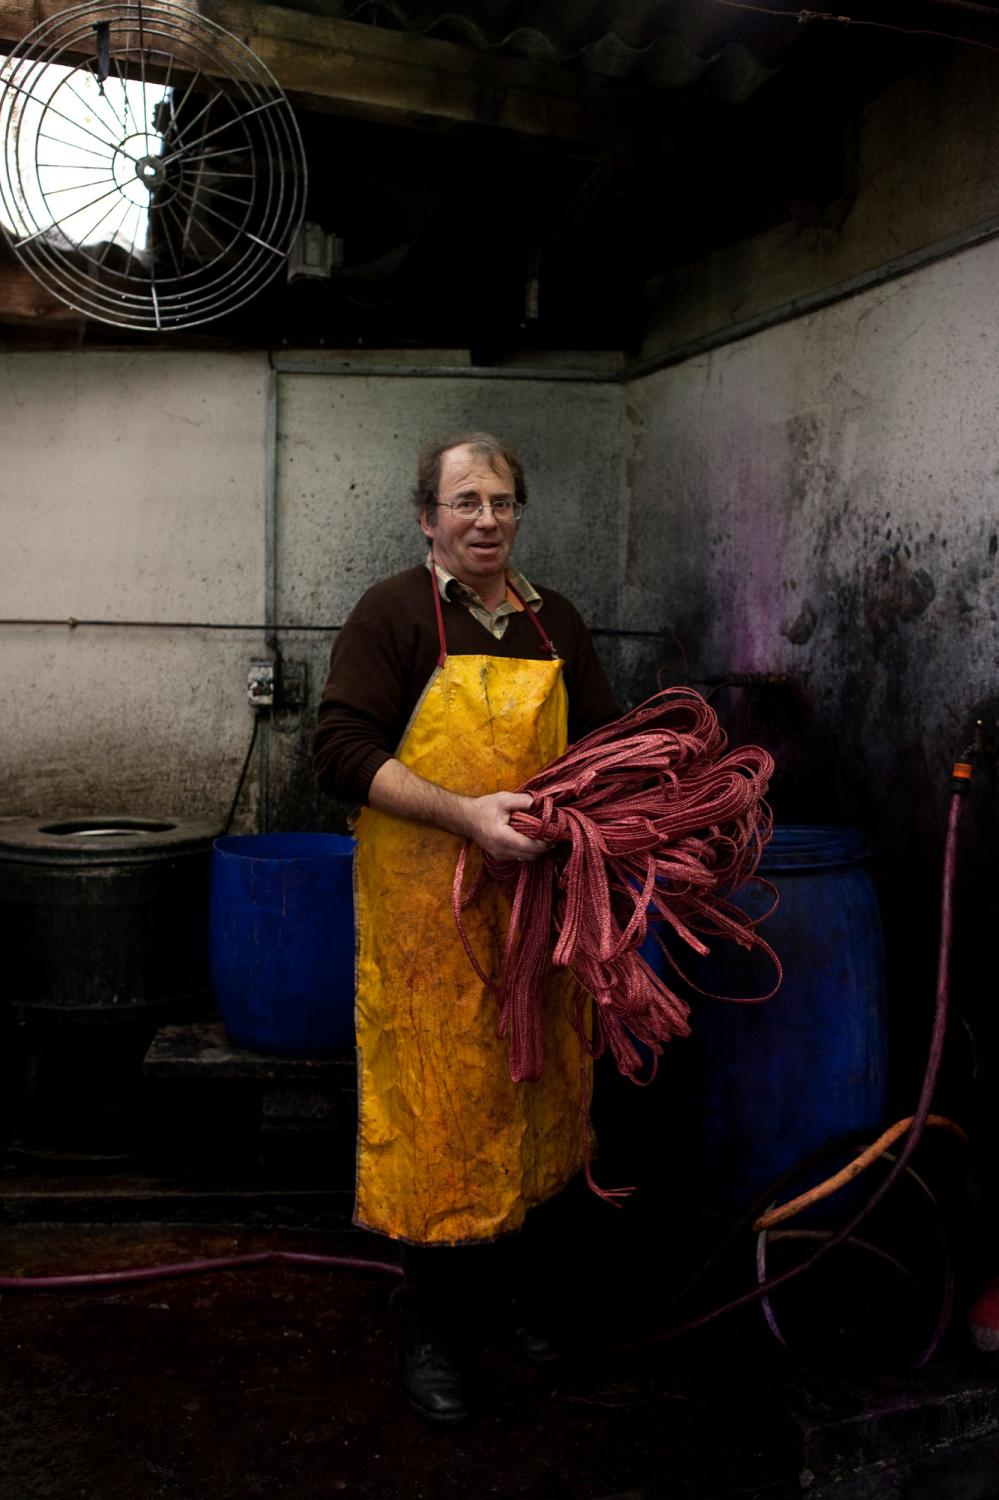 Jean-Claude Coustillères, one of the last hat makers in Septfonds, France